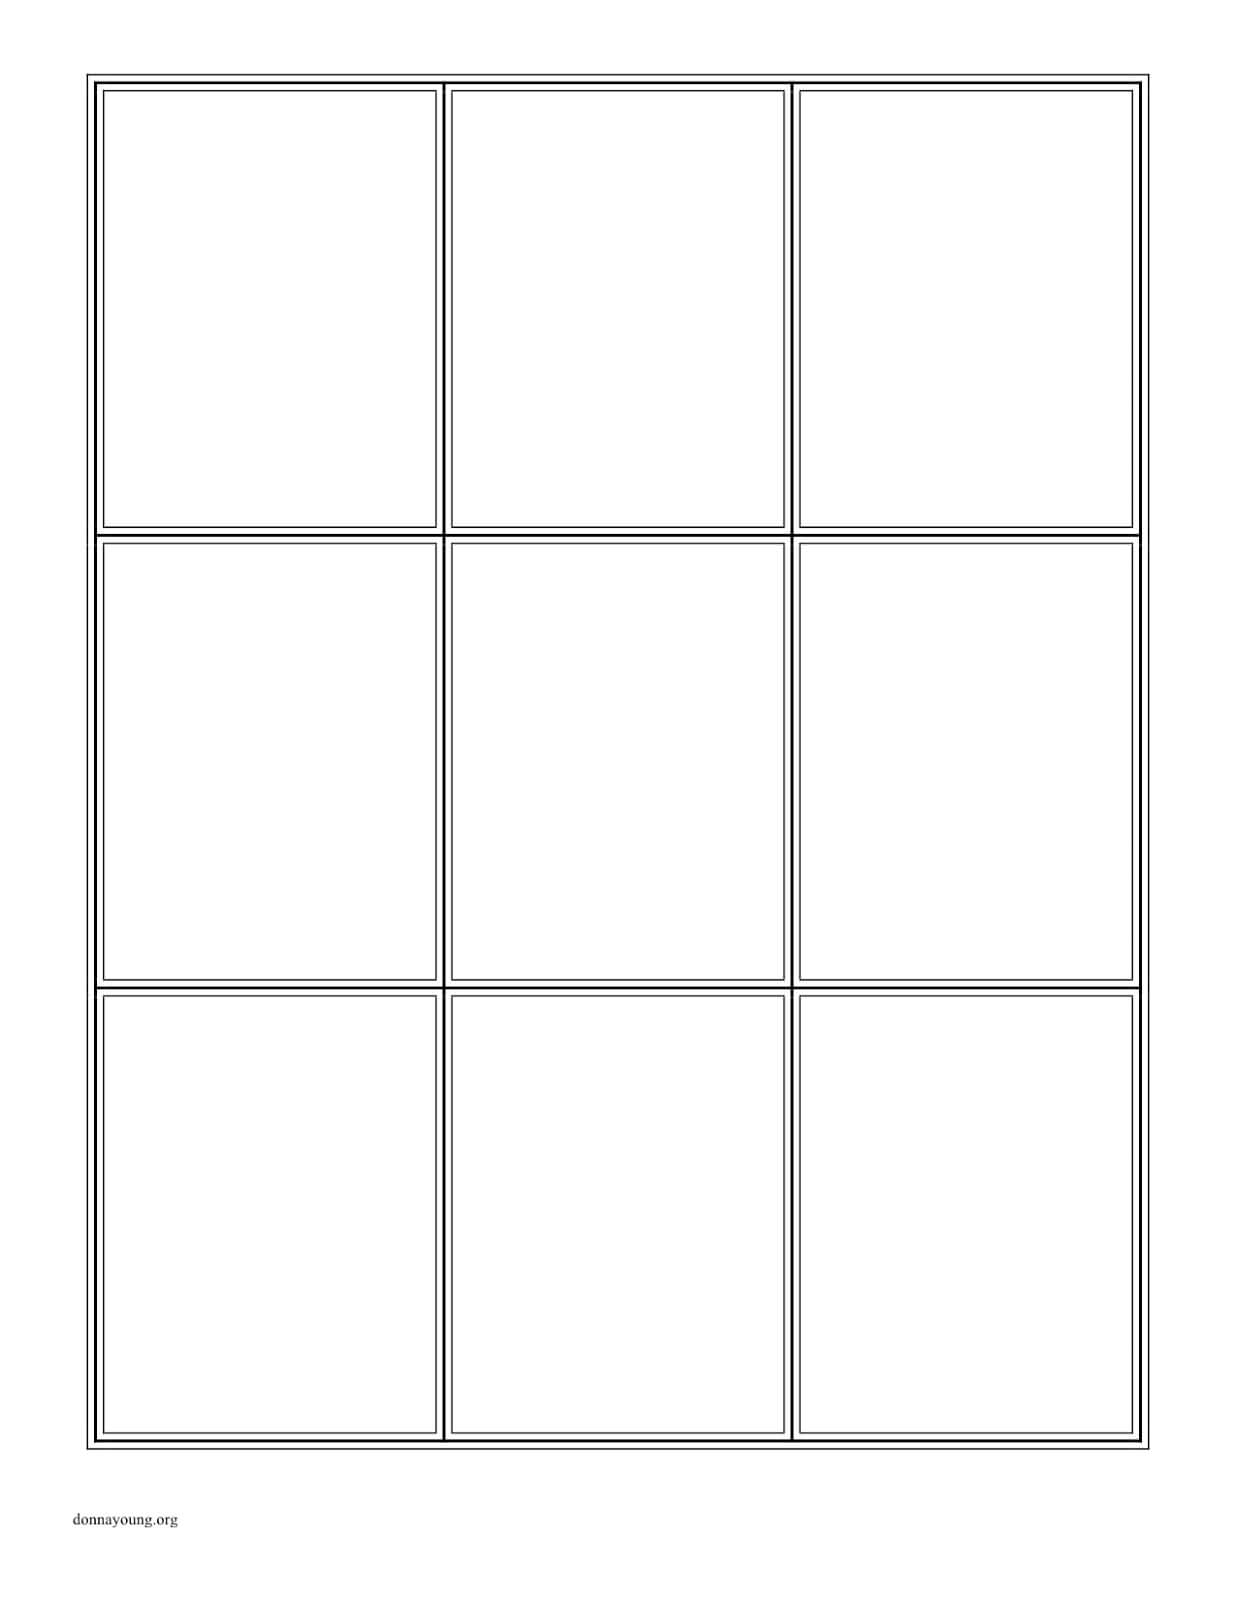 005 Free Trading Card Template Maker Ideas Board Game Blank With Template For Game Cards